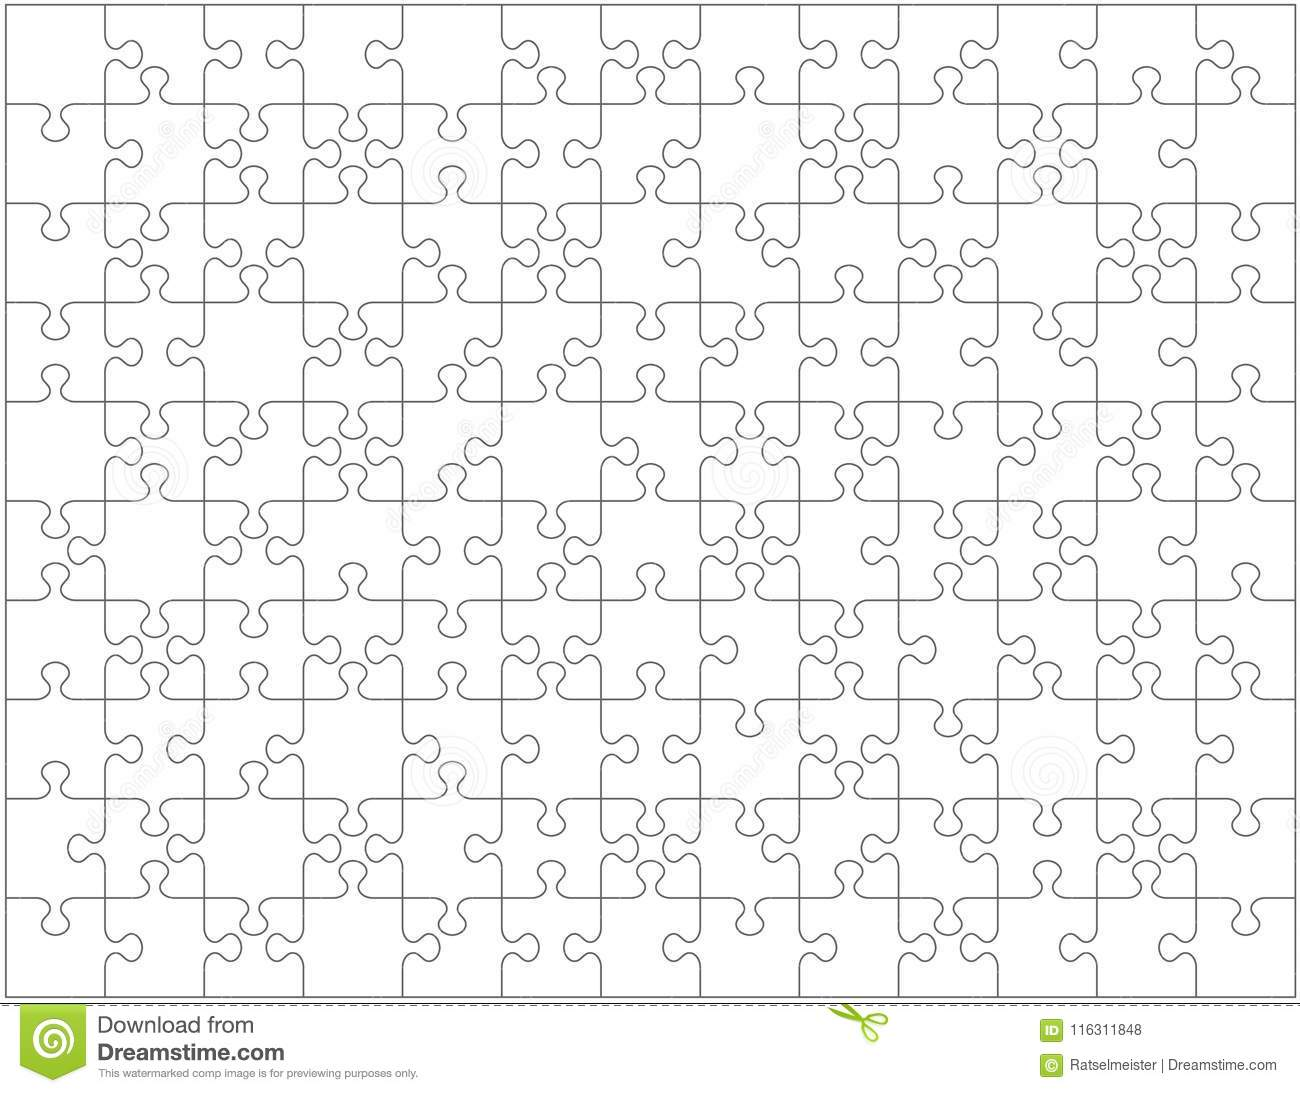 Jigsaw puzzle blank template or cutting guidelines with pieces of various shapes, horizontally oriented